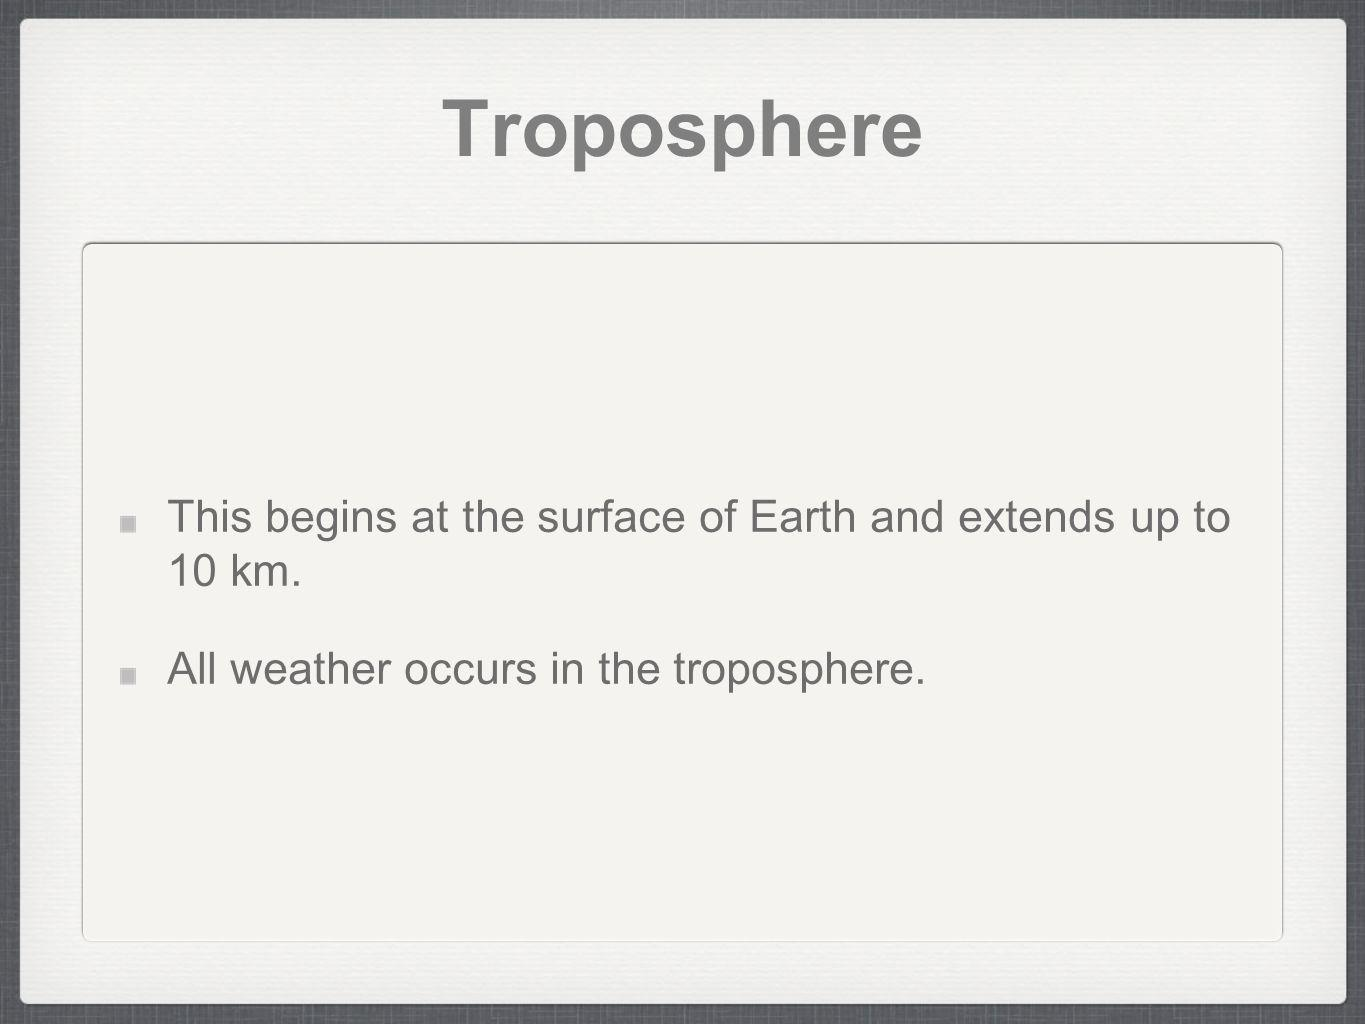 Troposphere This begins at the surface of Earth and extends up to 10 km. All weather occurs in the troposphere.